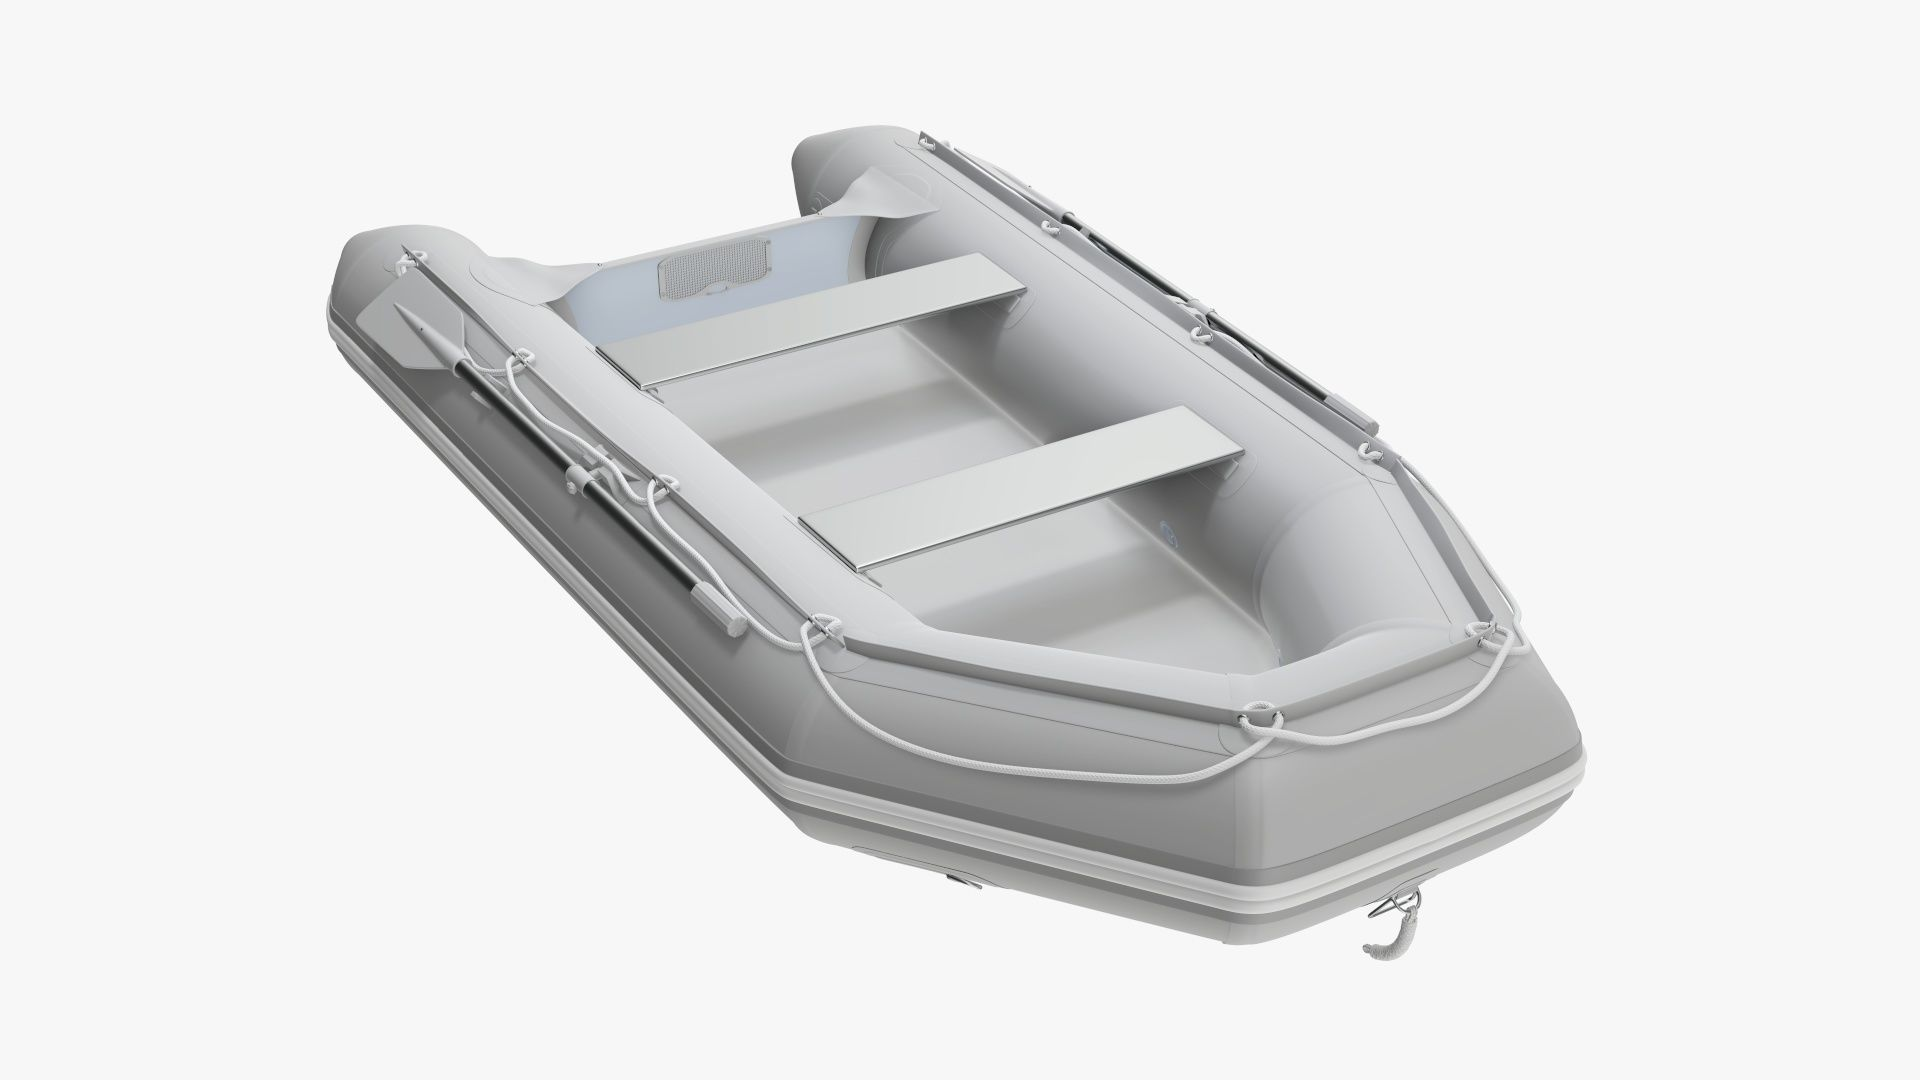 Boat inflatable 03